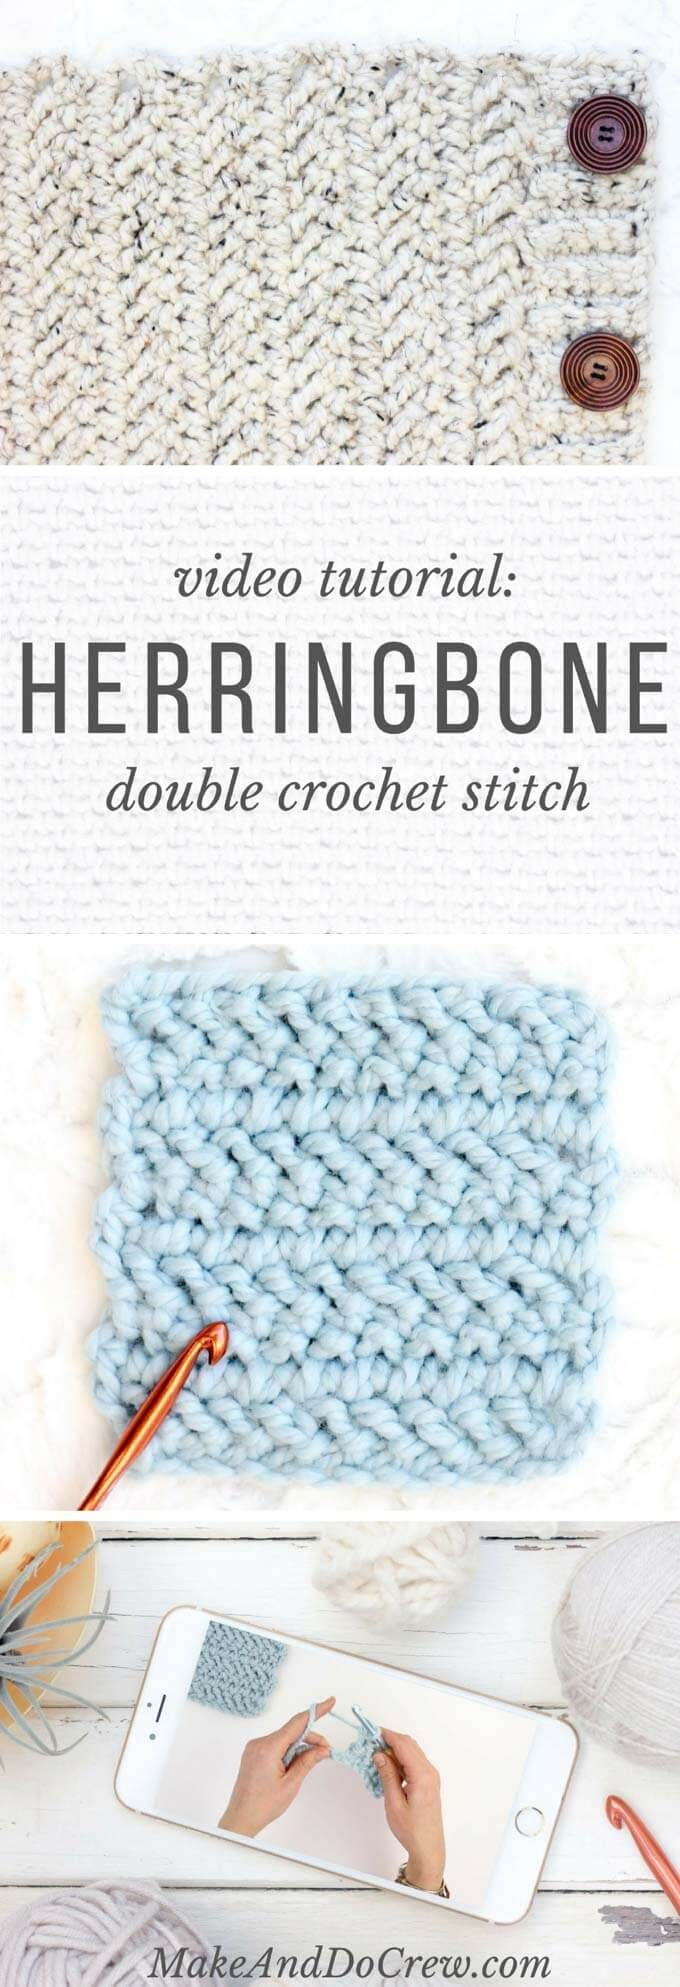 Learn how to crochet the herringbone double crochet stitch in this ...